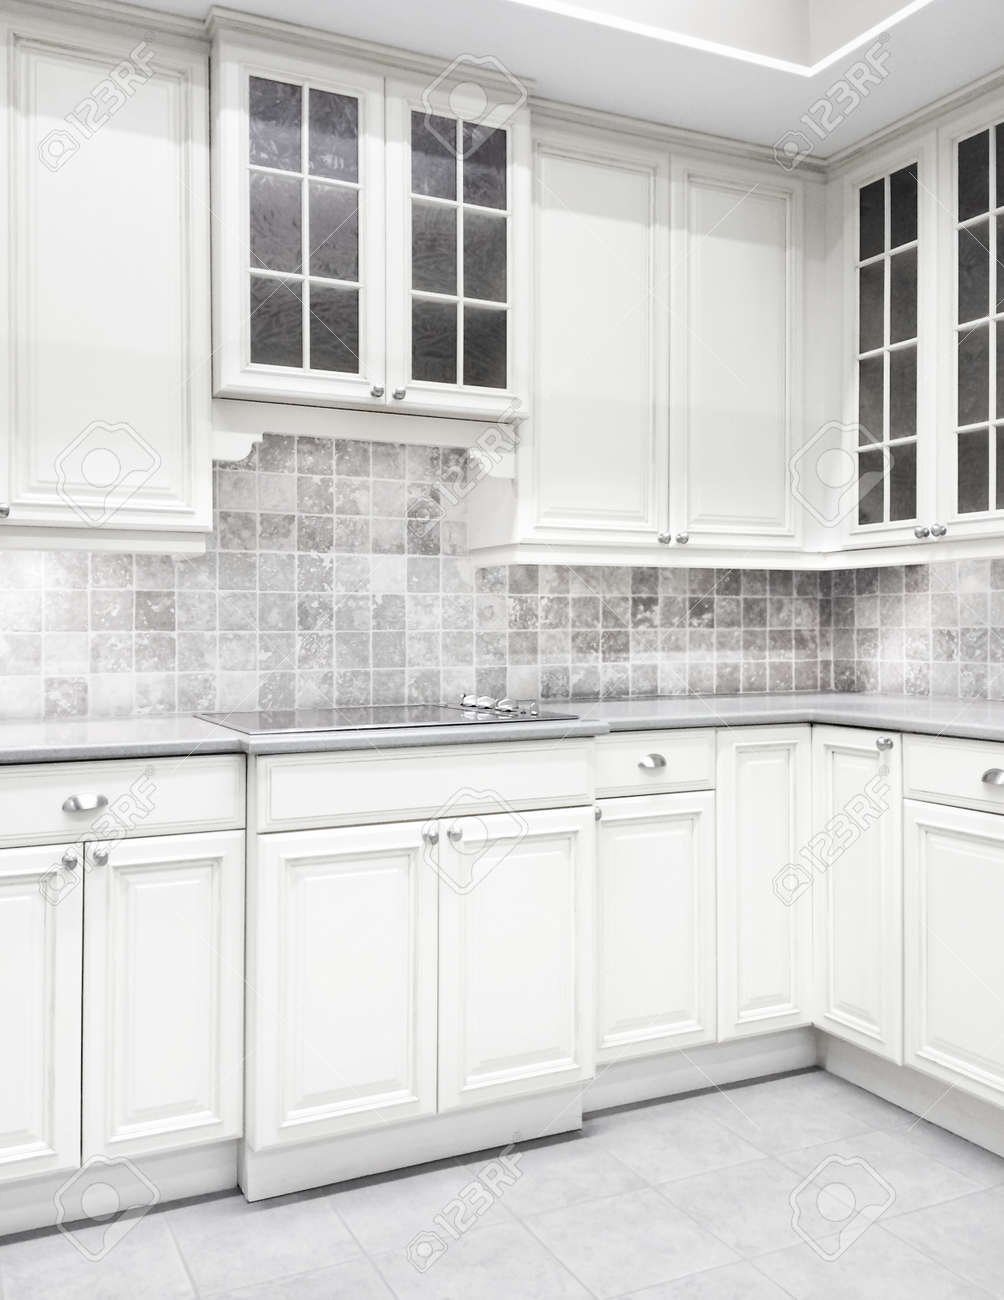 Contemporary Kitchen With White Cabinets And Tiled Walls Stock Photo Picture Royalty Free Image 33028381